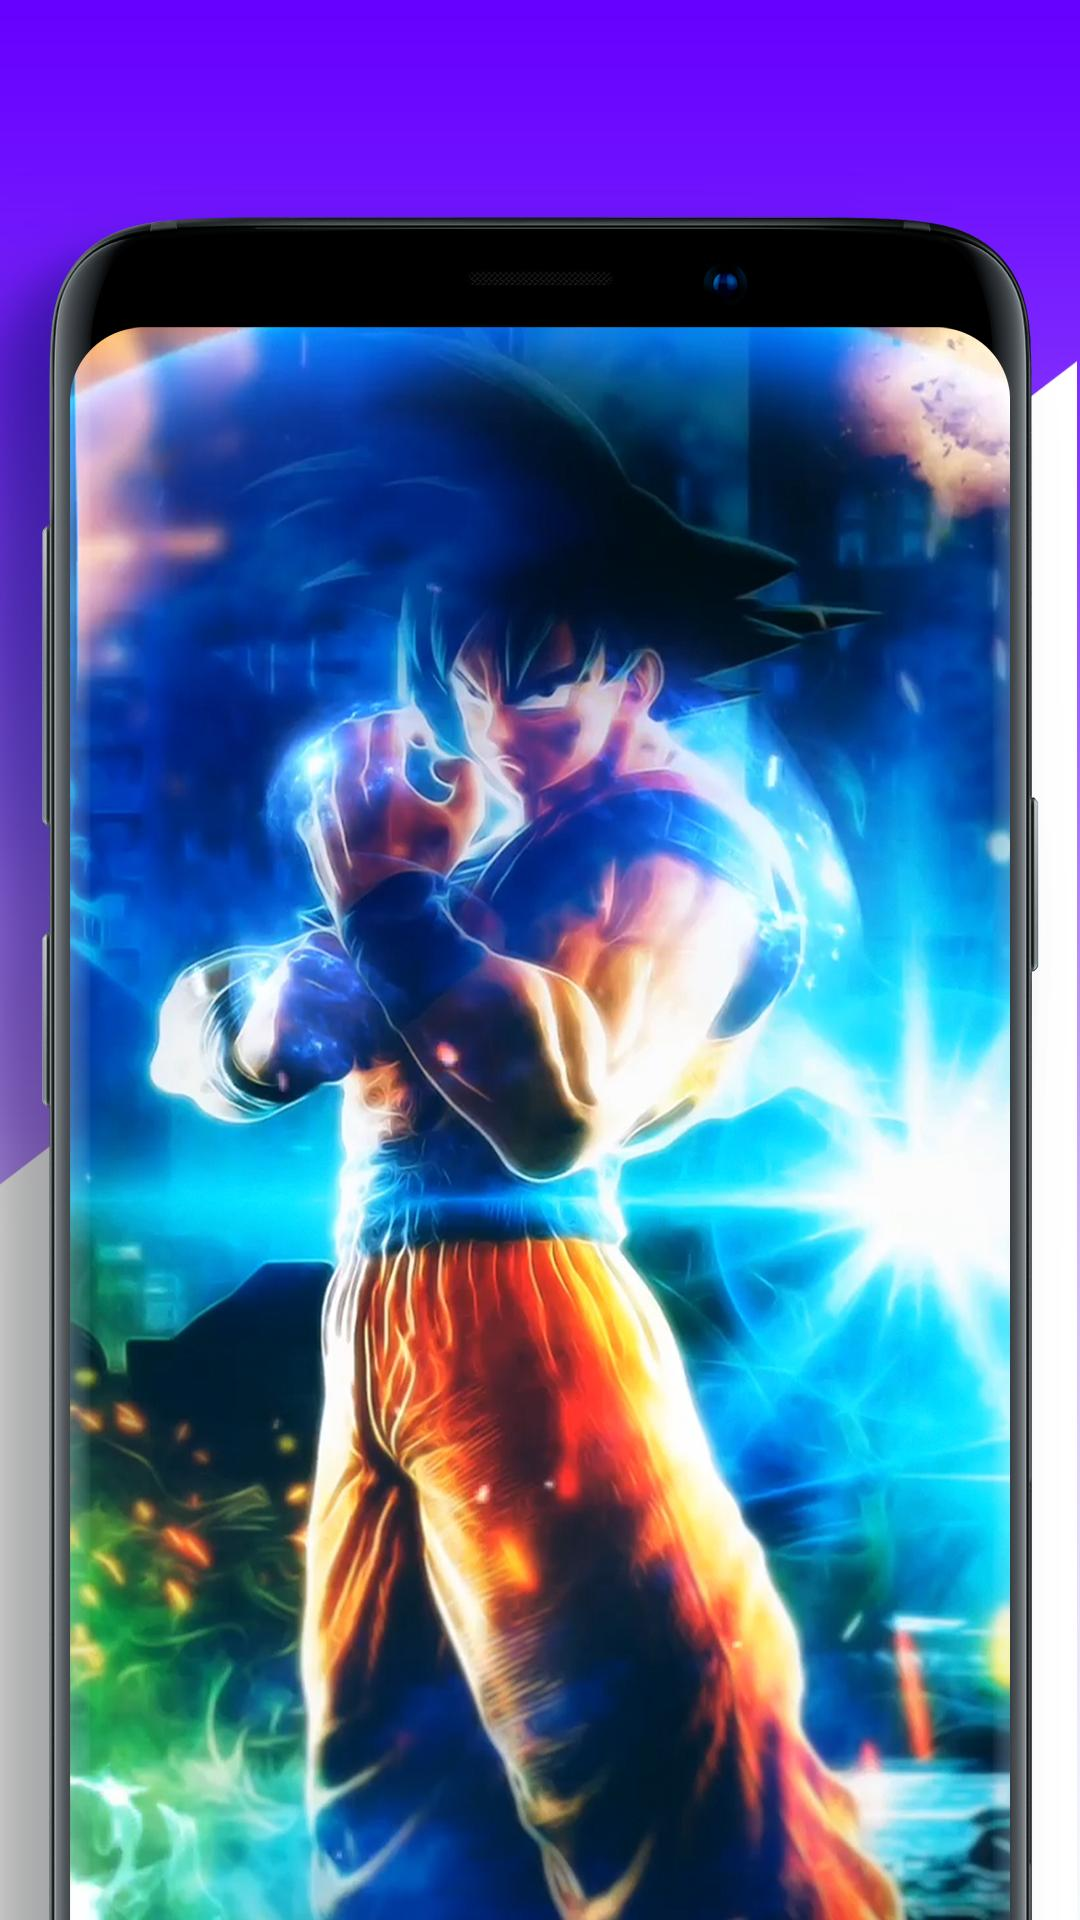 Dbz Anime Live Wallpaper Goku Hd Video Animation For Android